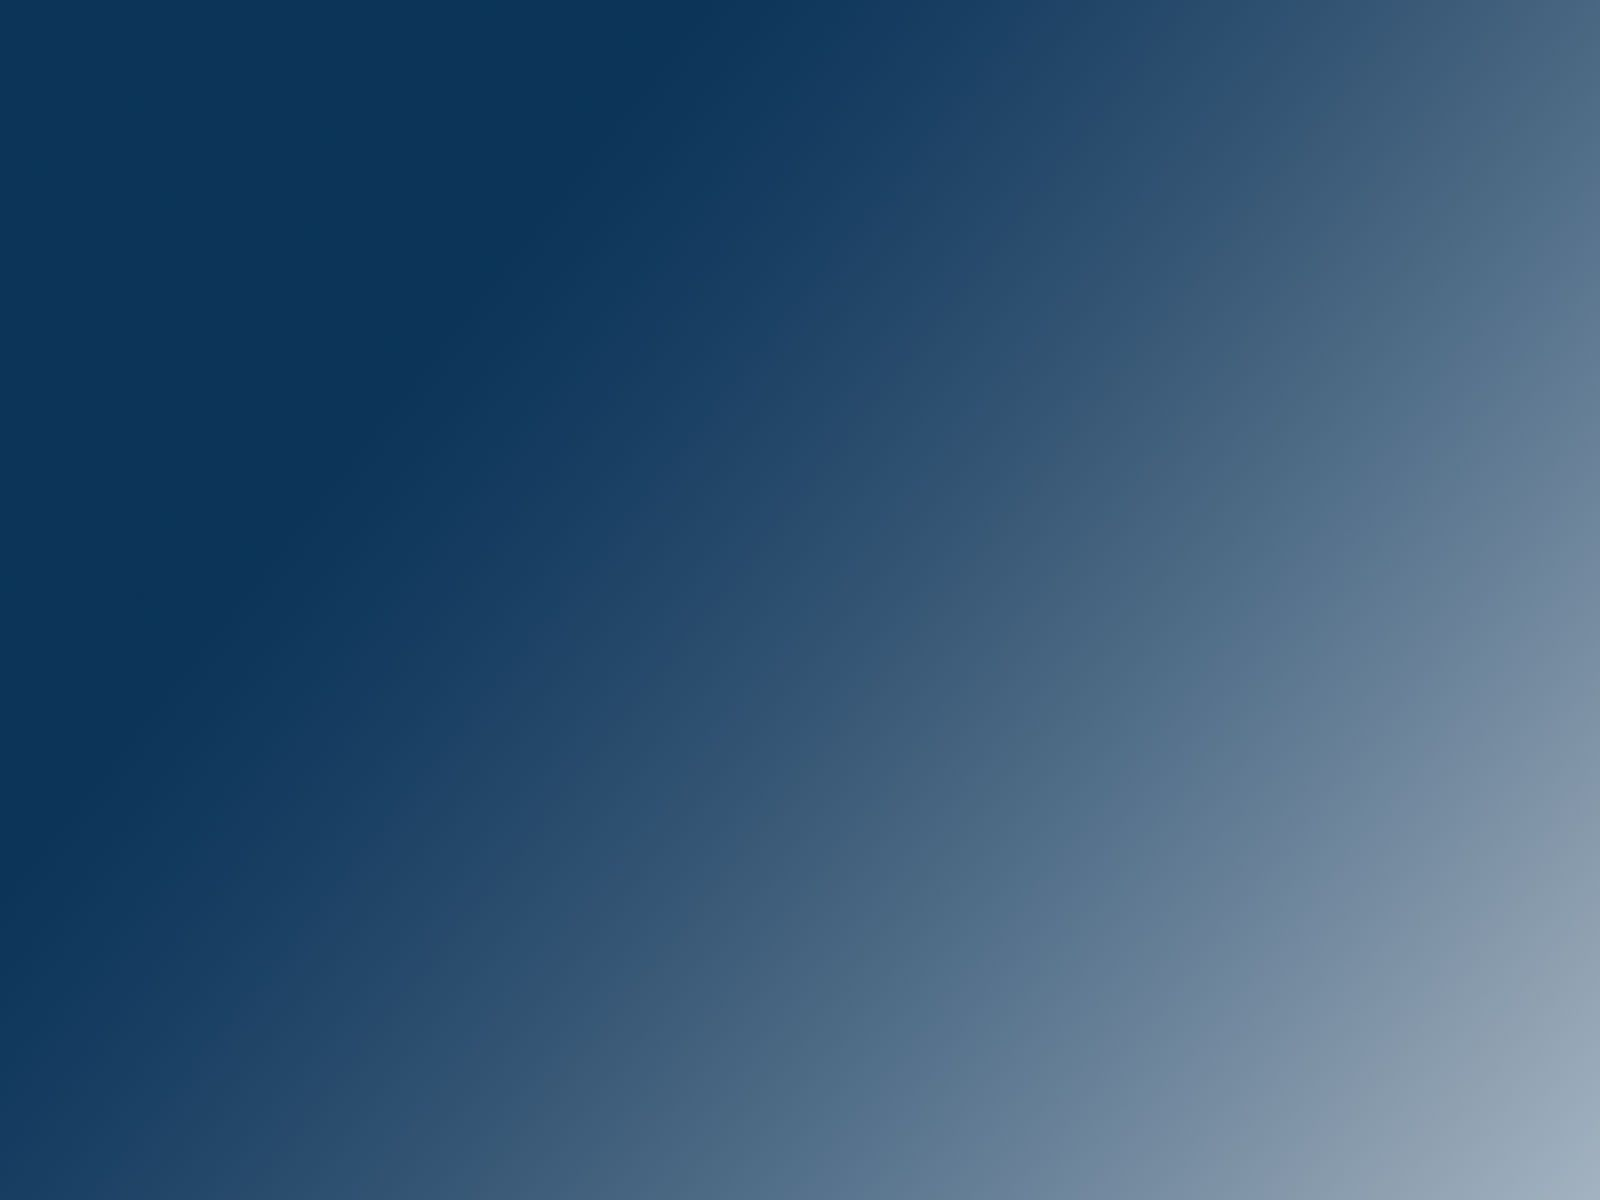 Solid Navy Blue Background Blurred background, Ipad